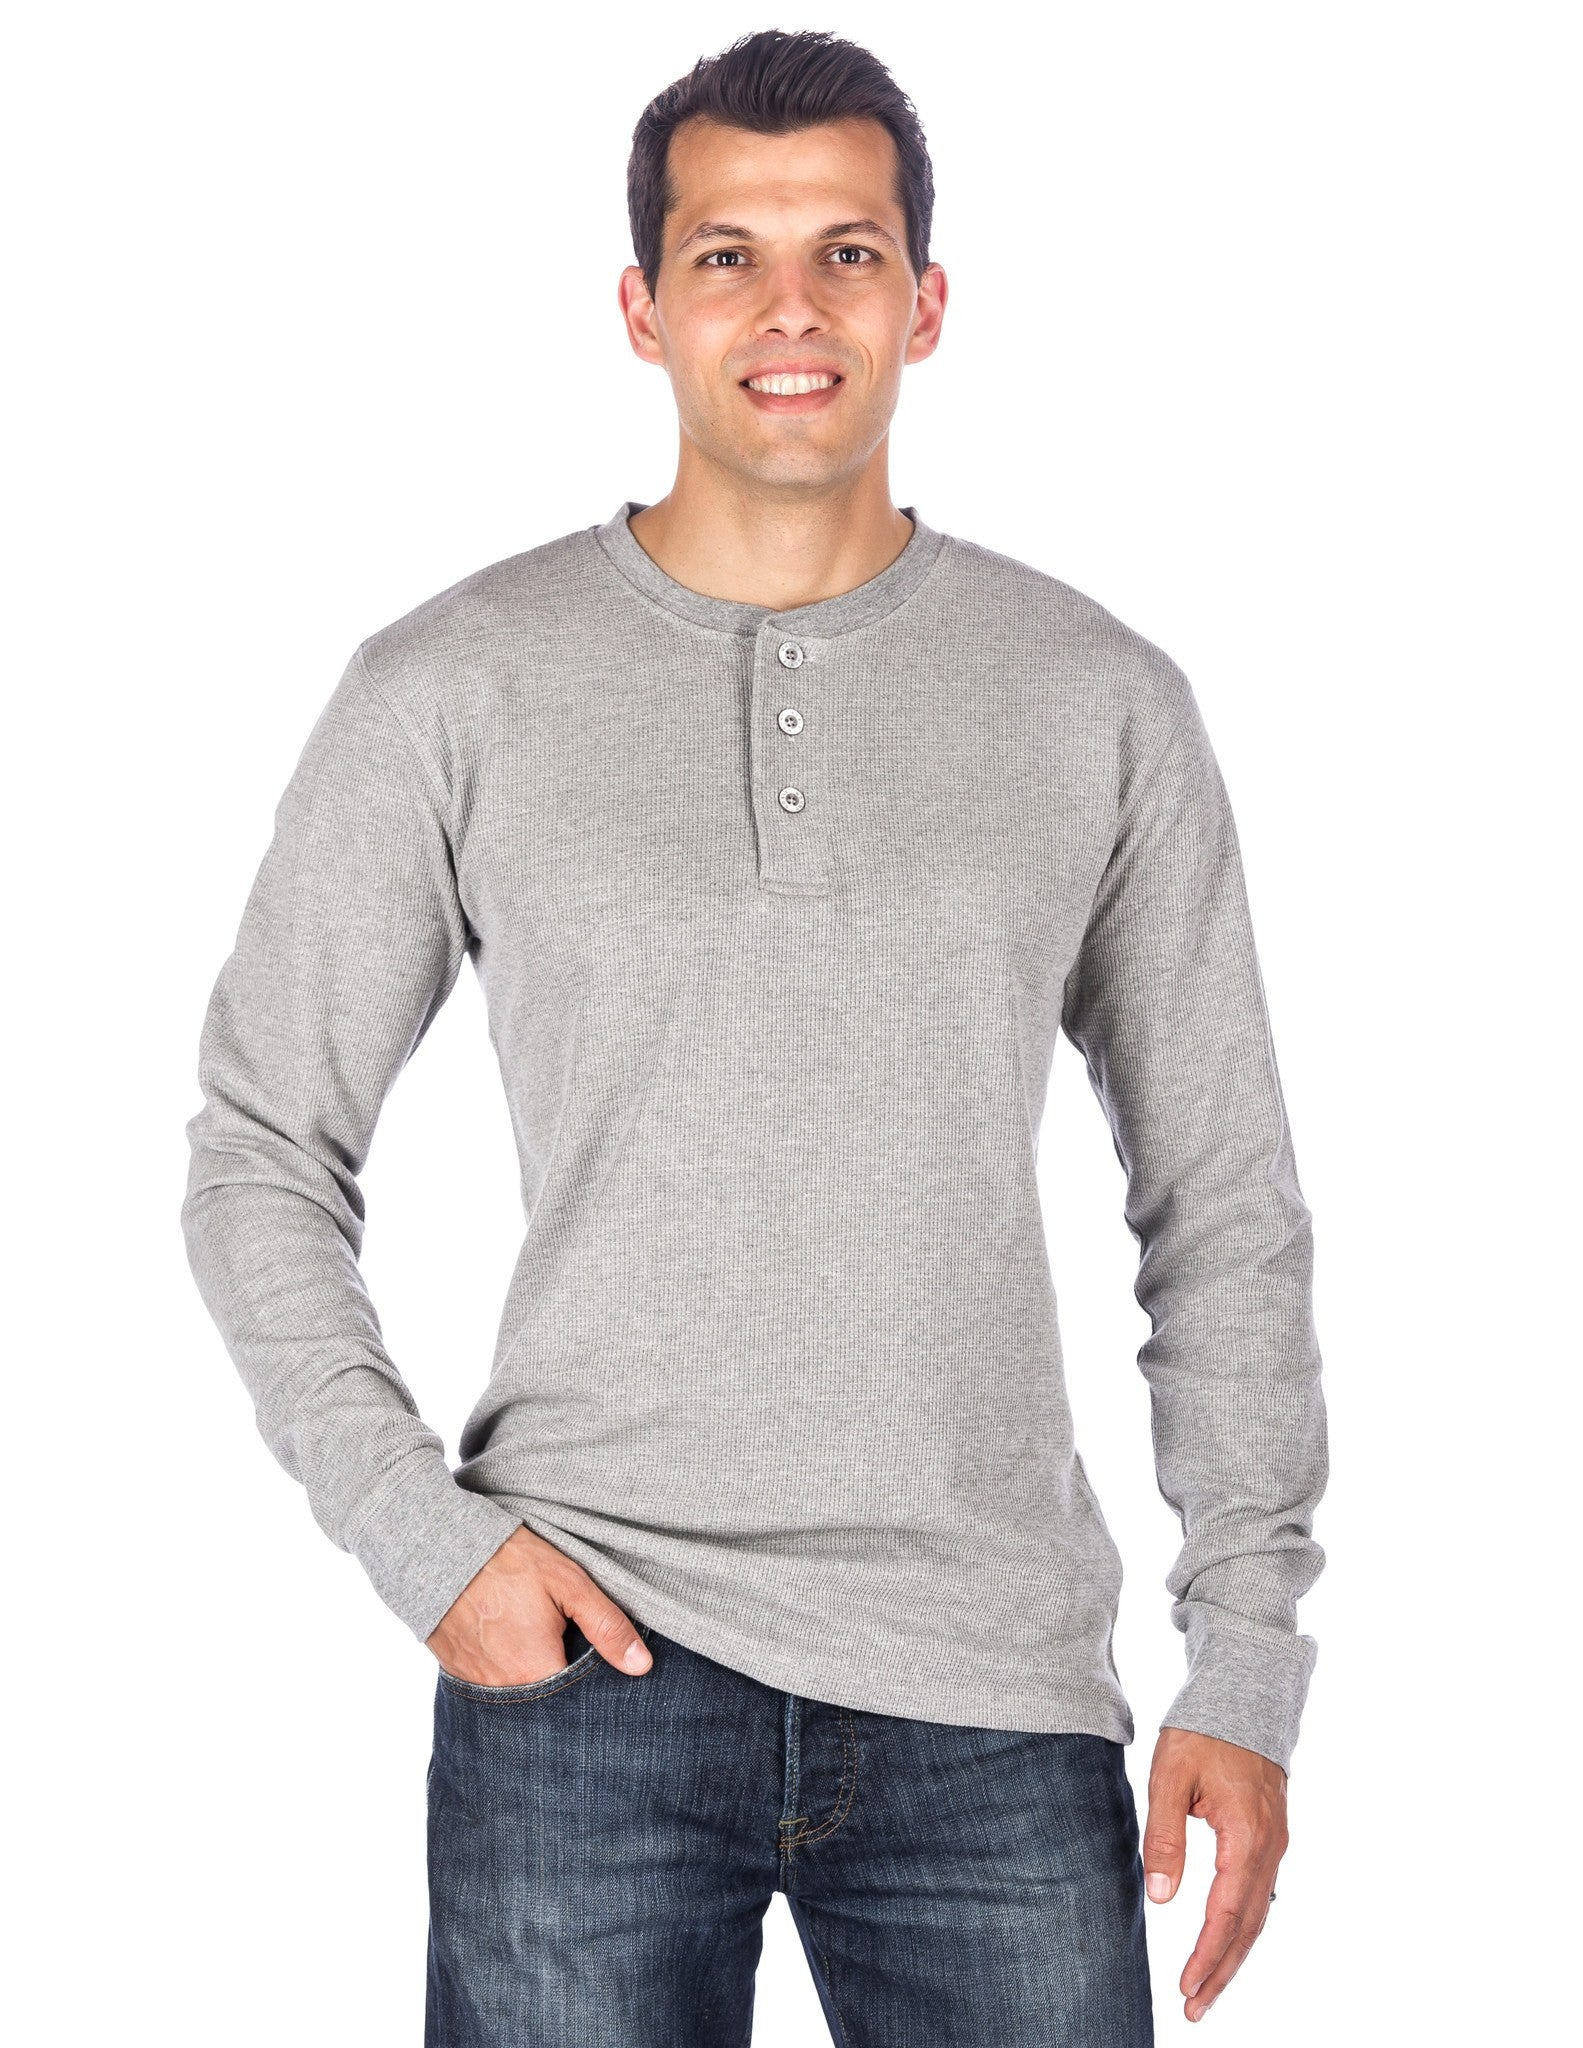 Men's Solid Thermal Henley Long Sleeve T-shirts